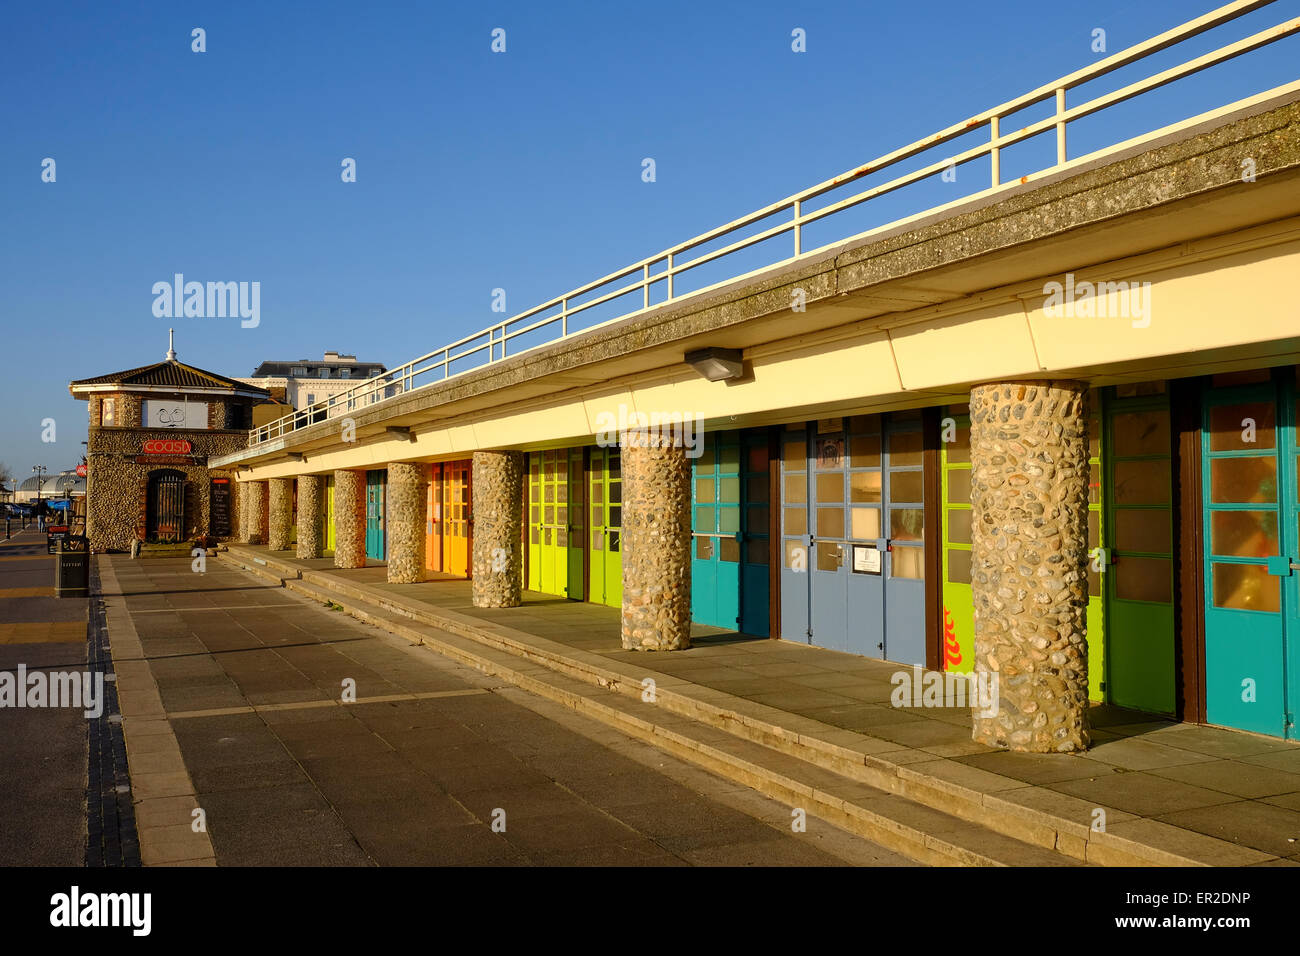 Brightly coloured artists lock-ups and coast cafe on the seafront at Worthing lit by the warm winter morning sunlight - Stock Image